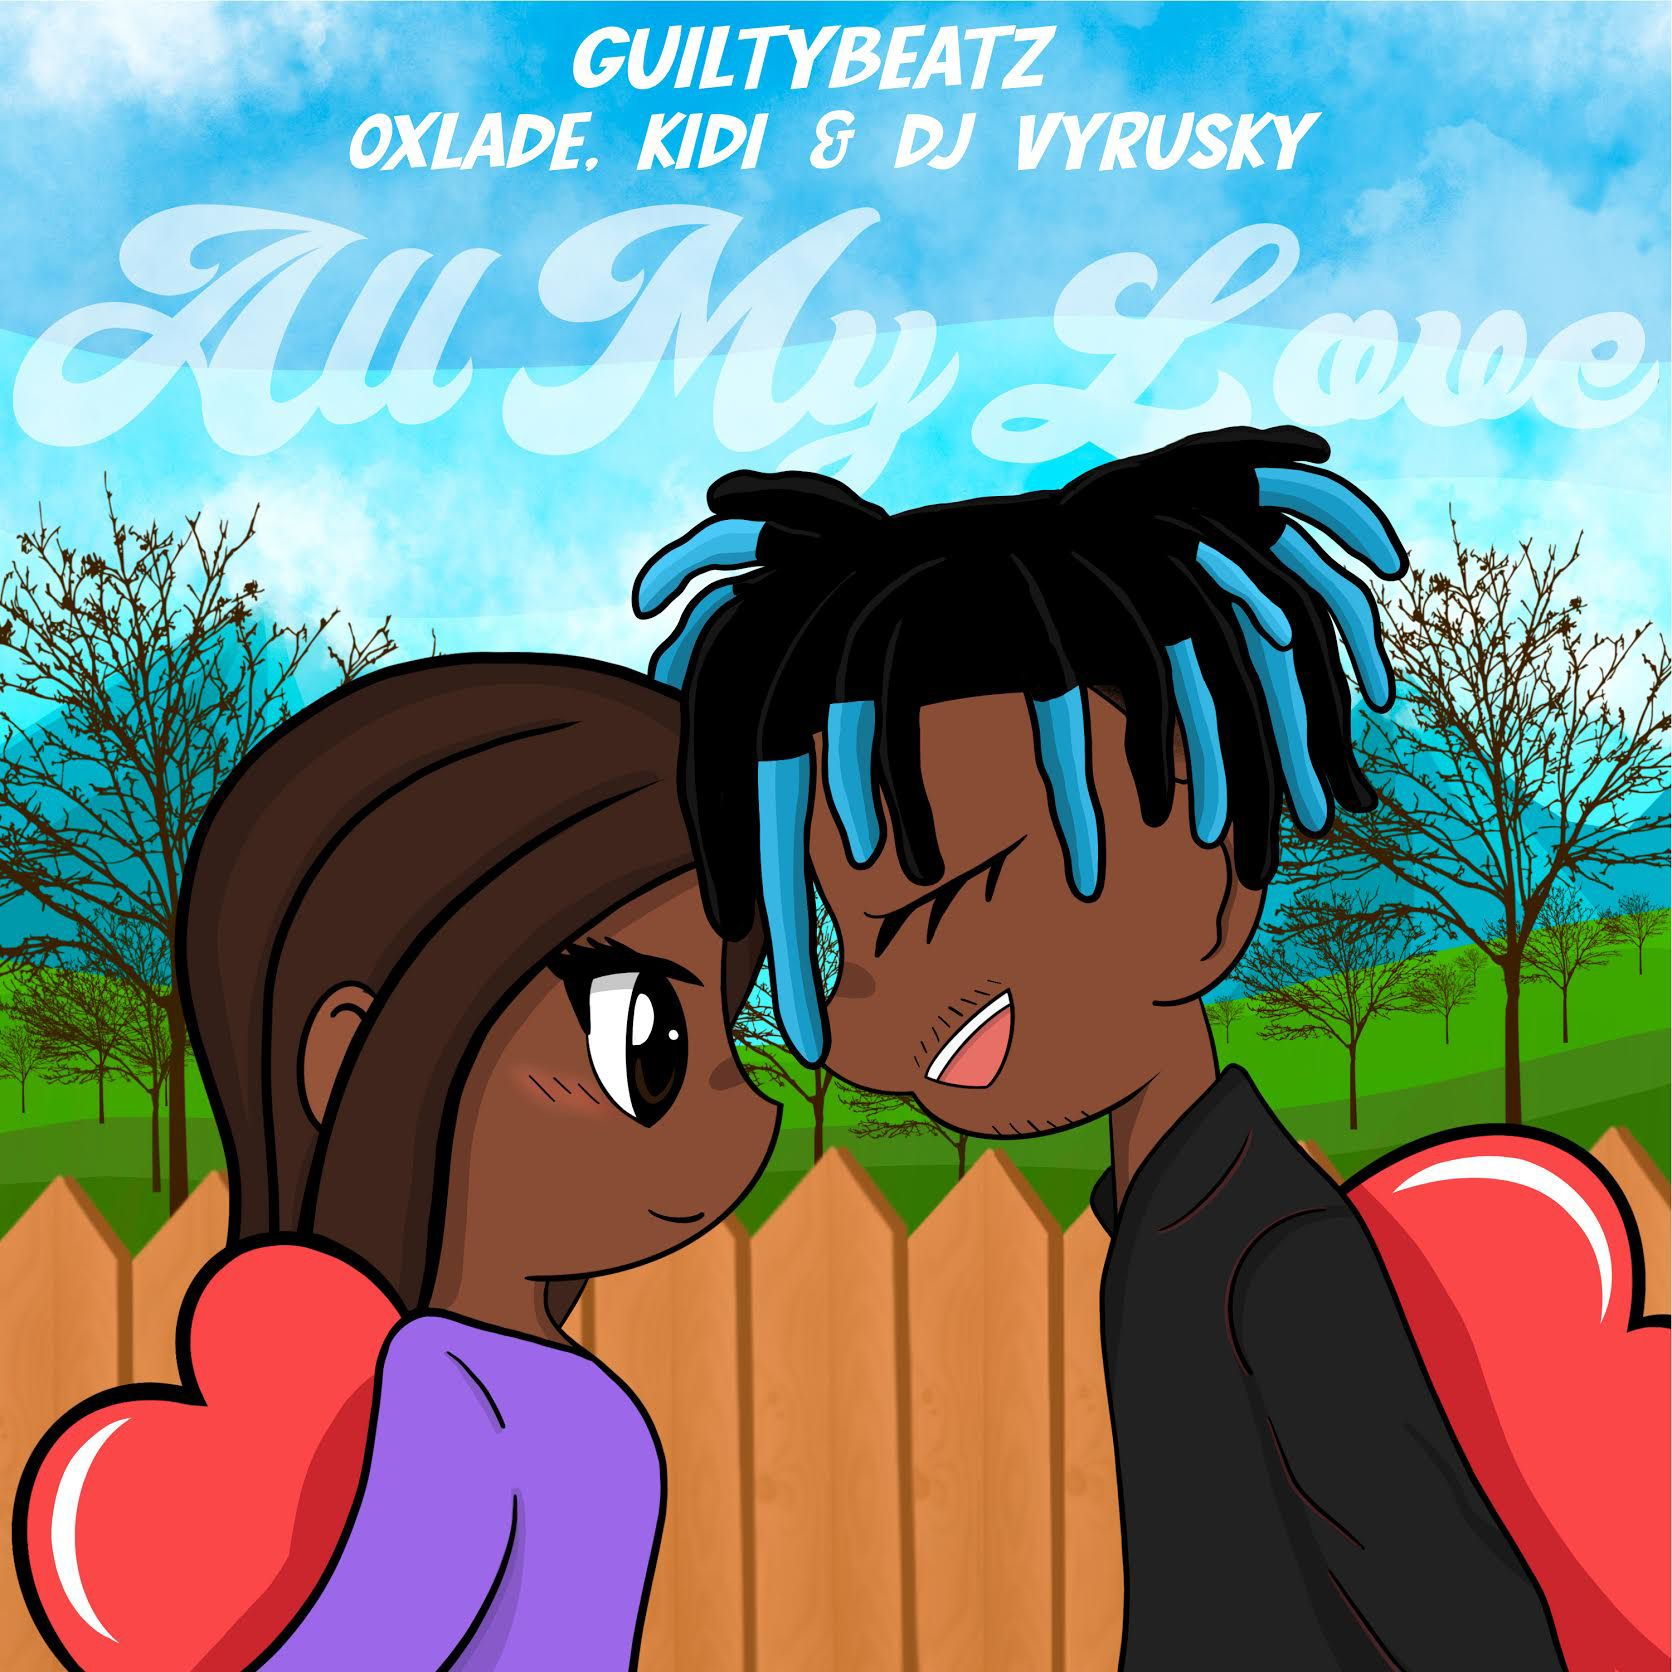 GuiltyBeatz Ft. Oxlade, KiDi & DJ Vyrusky - All My Love